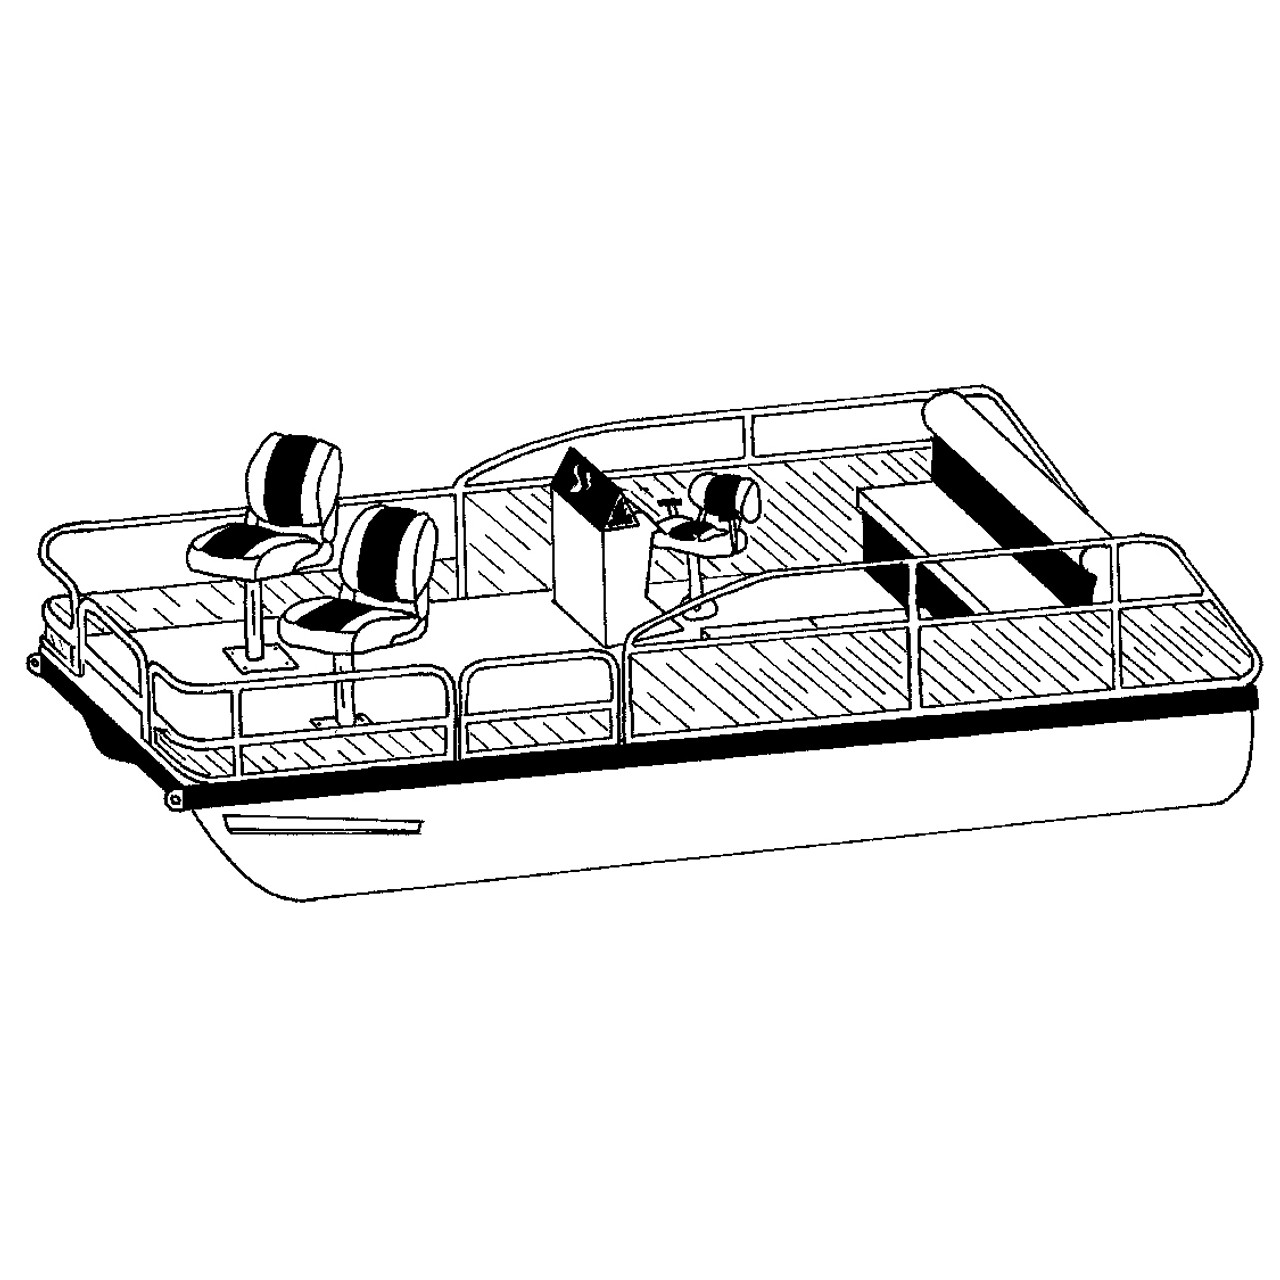 medium resolution of cover fits pontoon with low rails or fishing chairs at aft end of deck